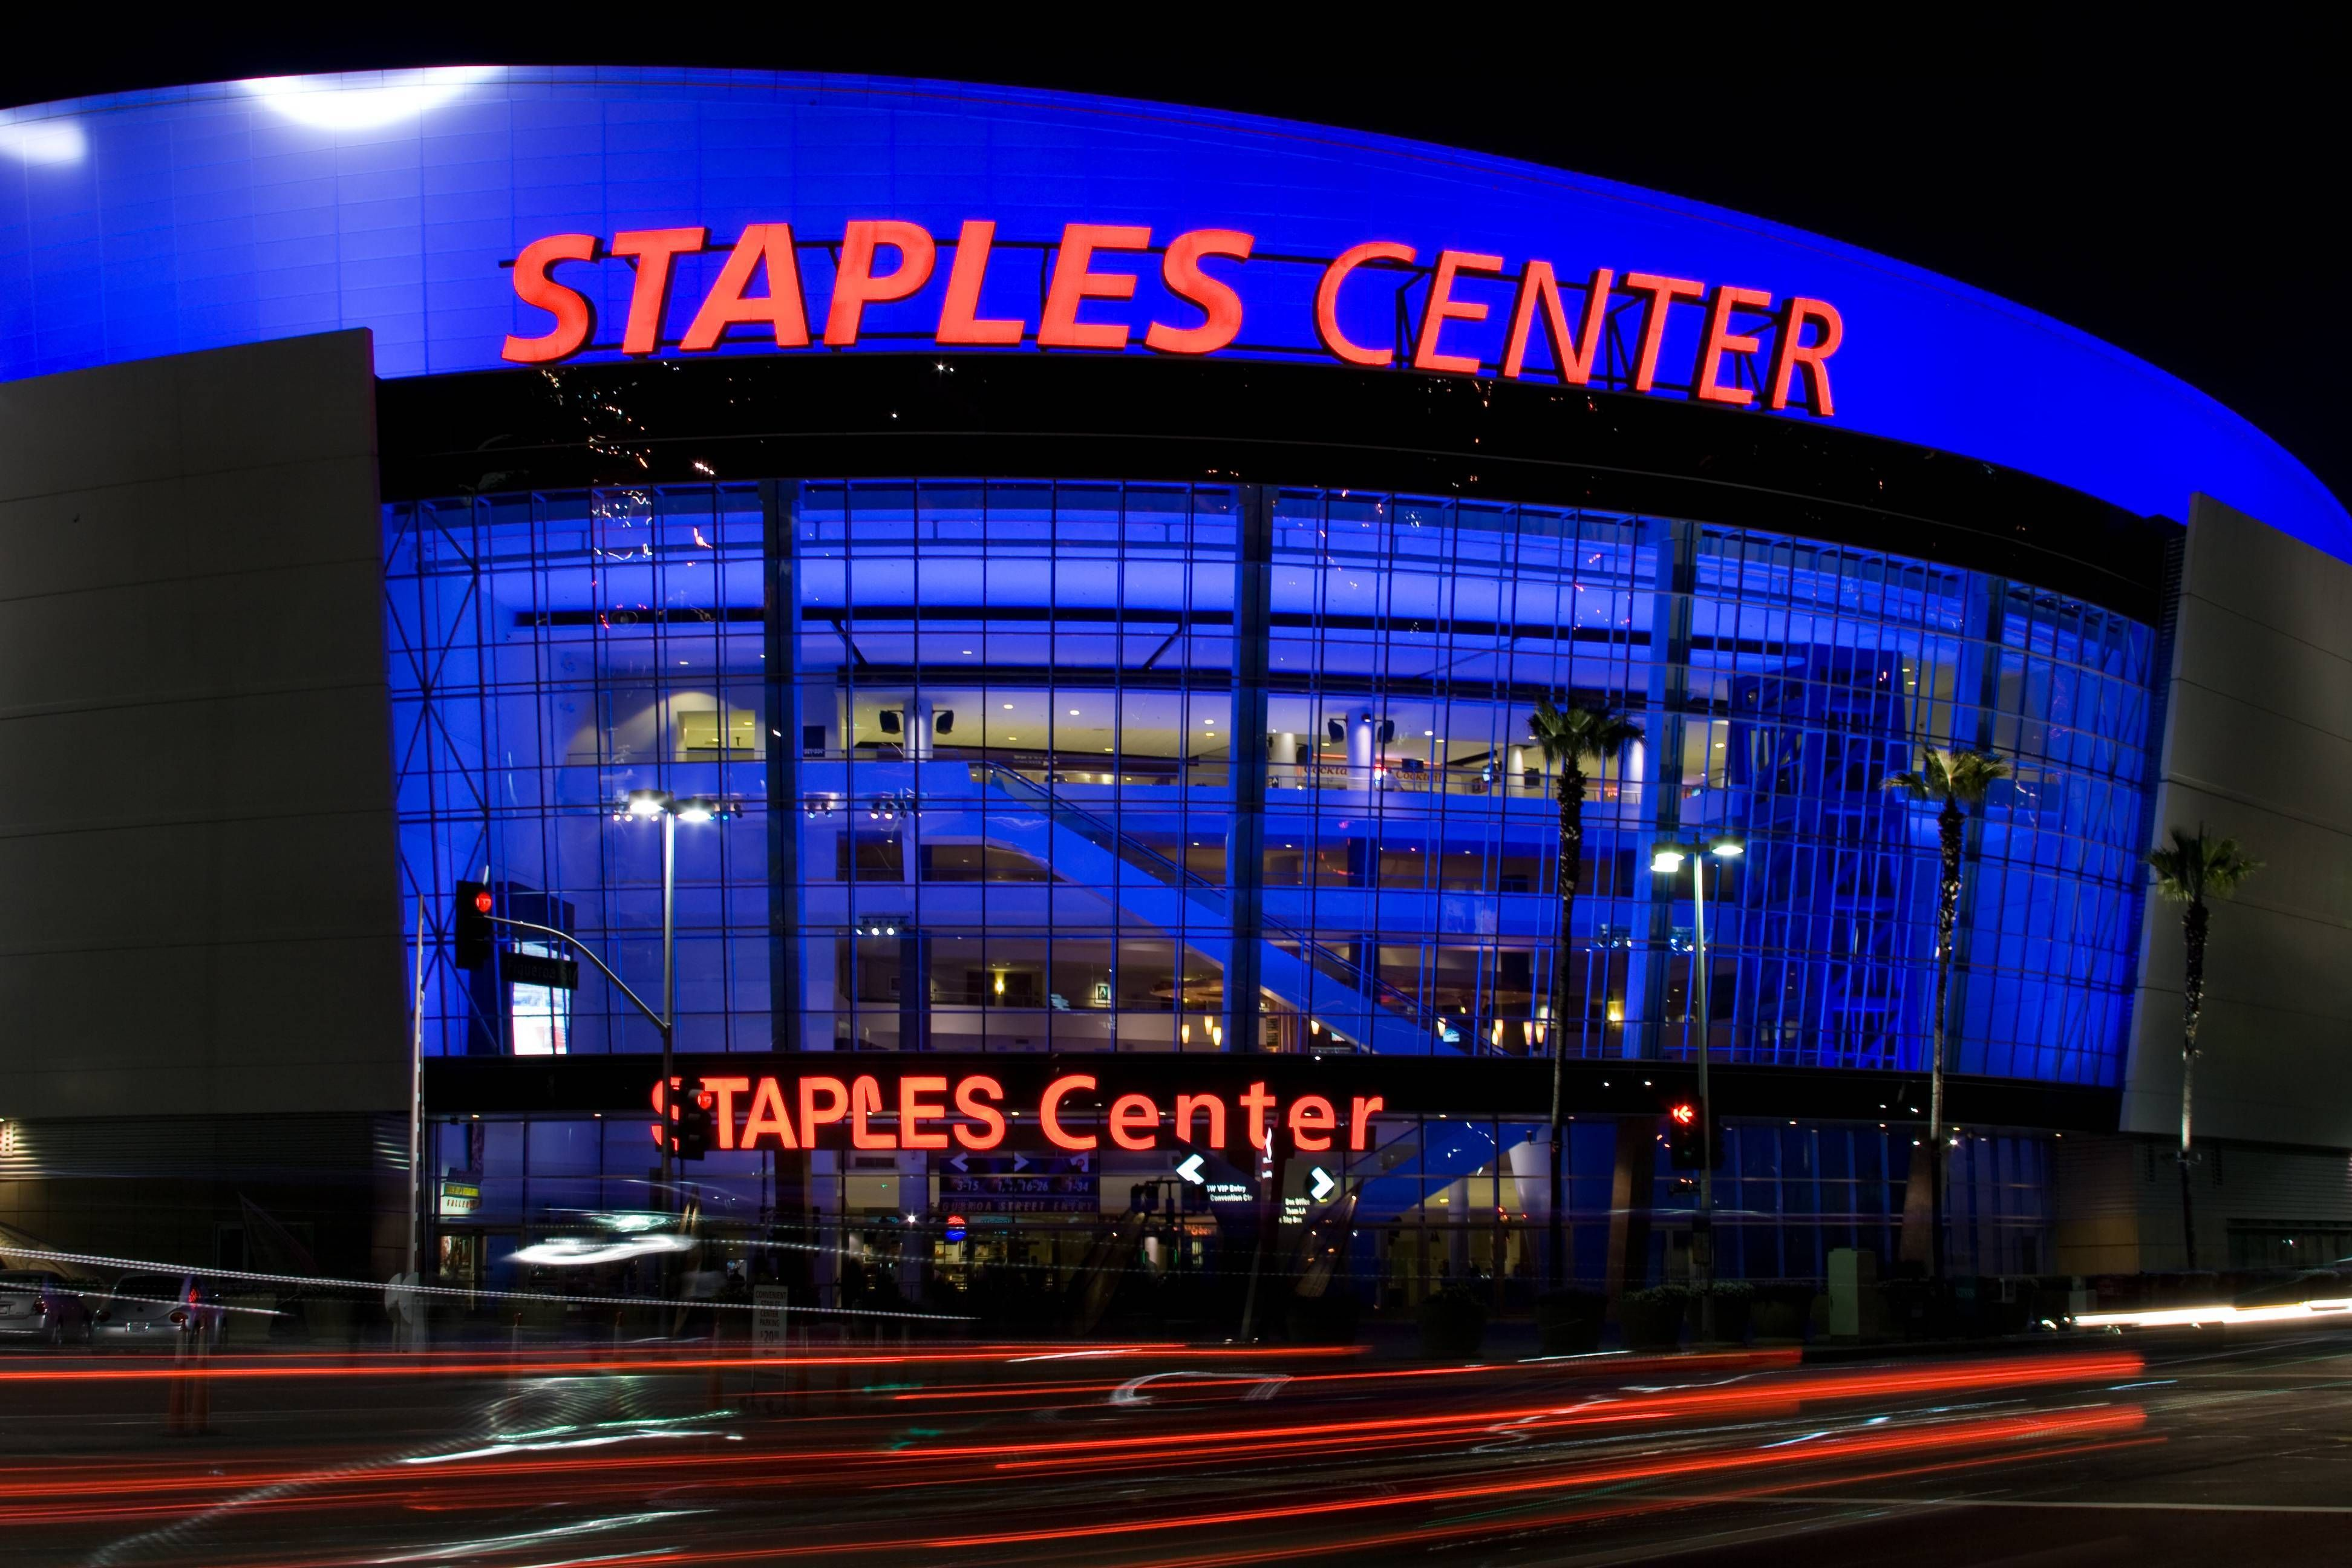 Staples Center Multi purpose Sports Arena Home of the LA Lakers Clippers and Kings Places I have been to